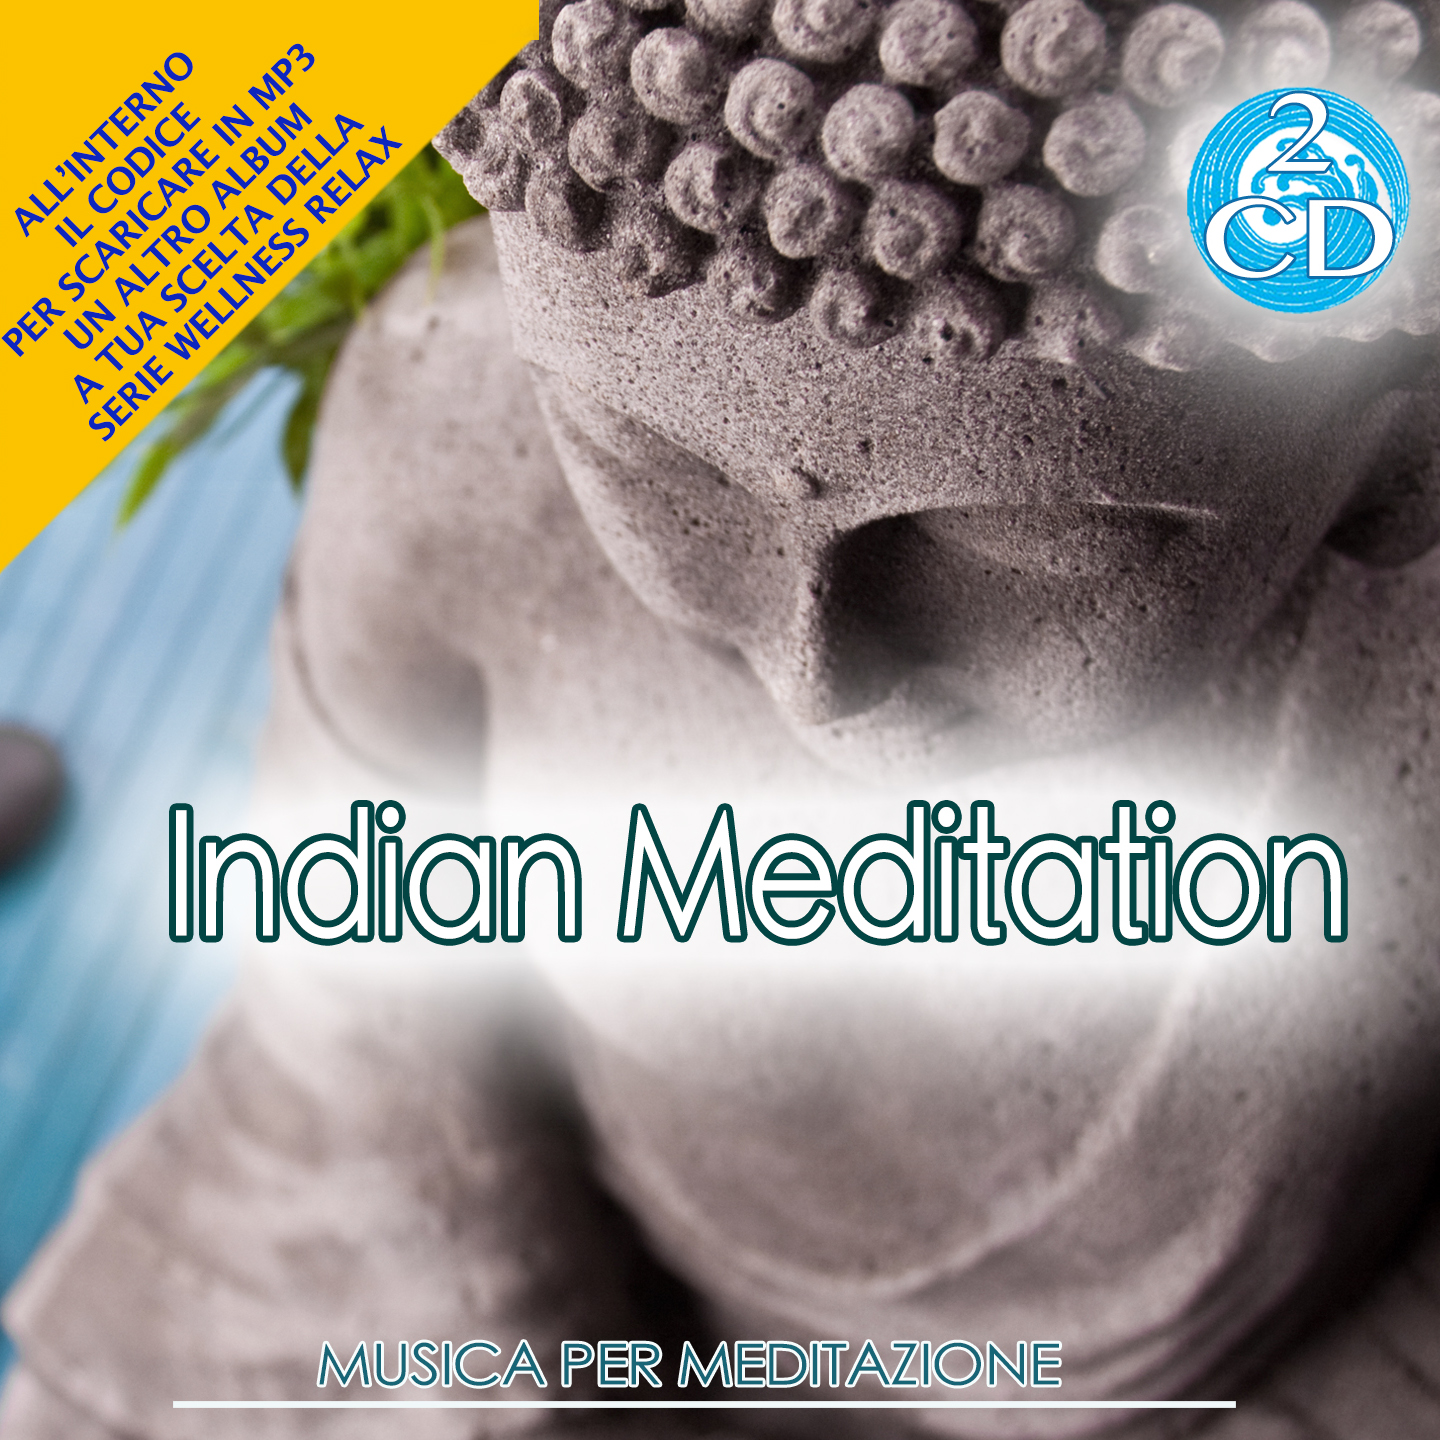 Indian Meditation: Musica Per Meditazione